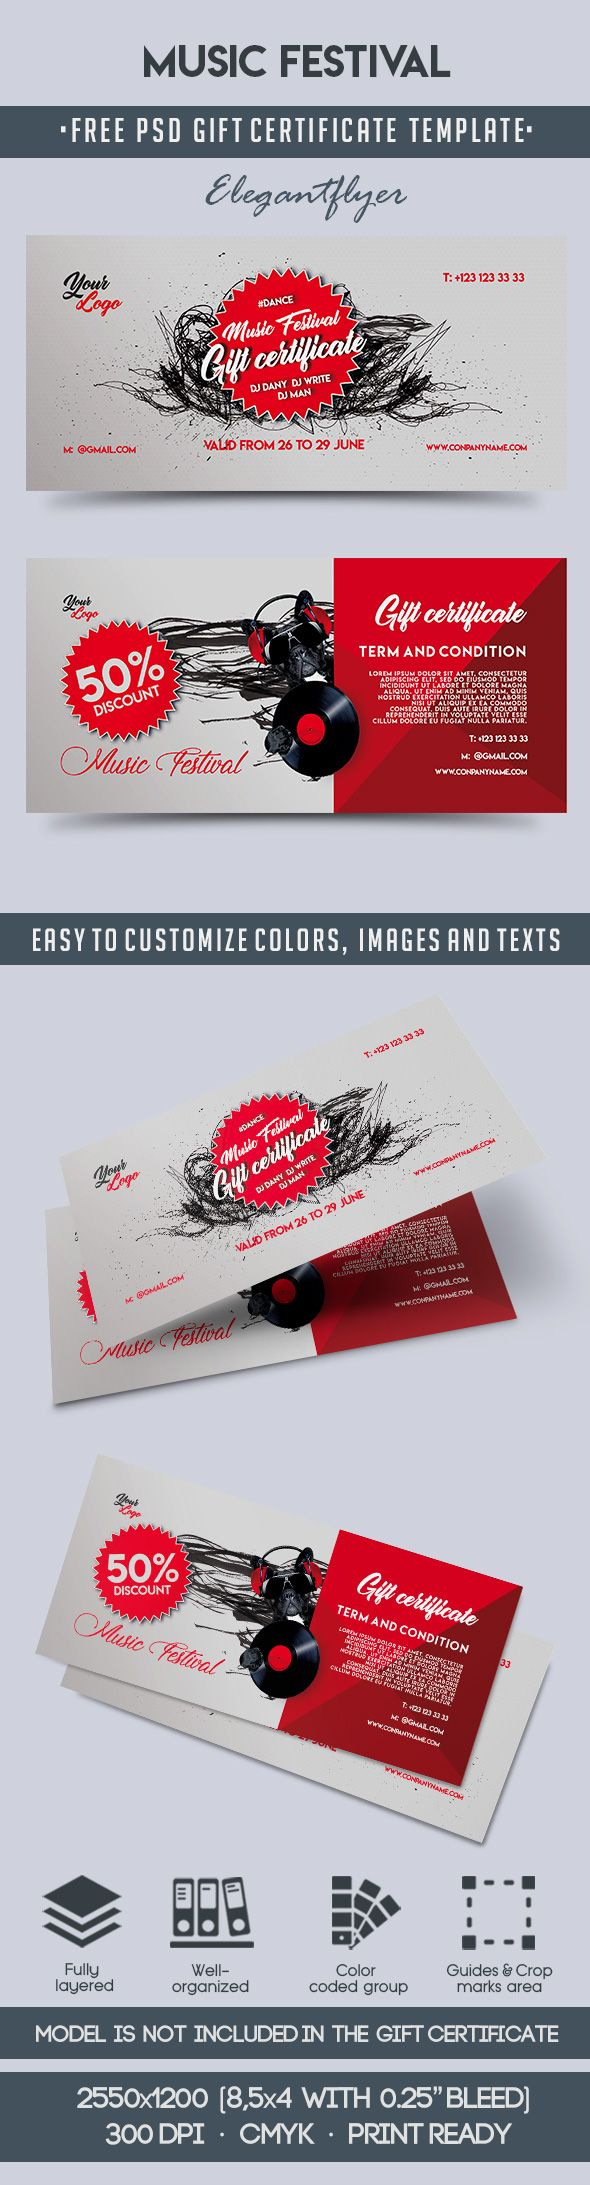 Music Festival – Free Gift Certificate PSD Template